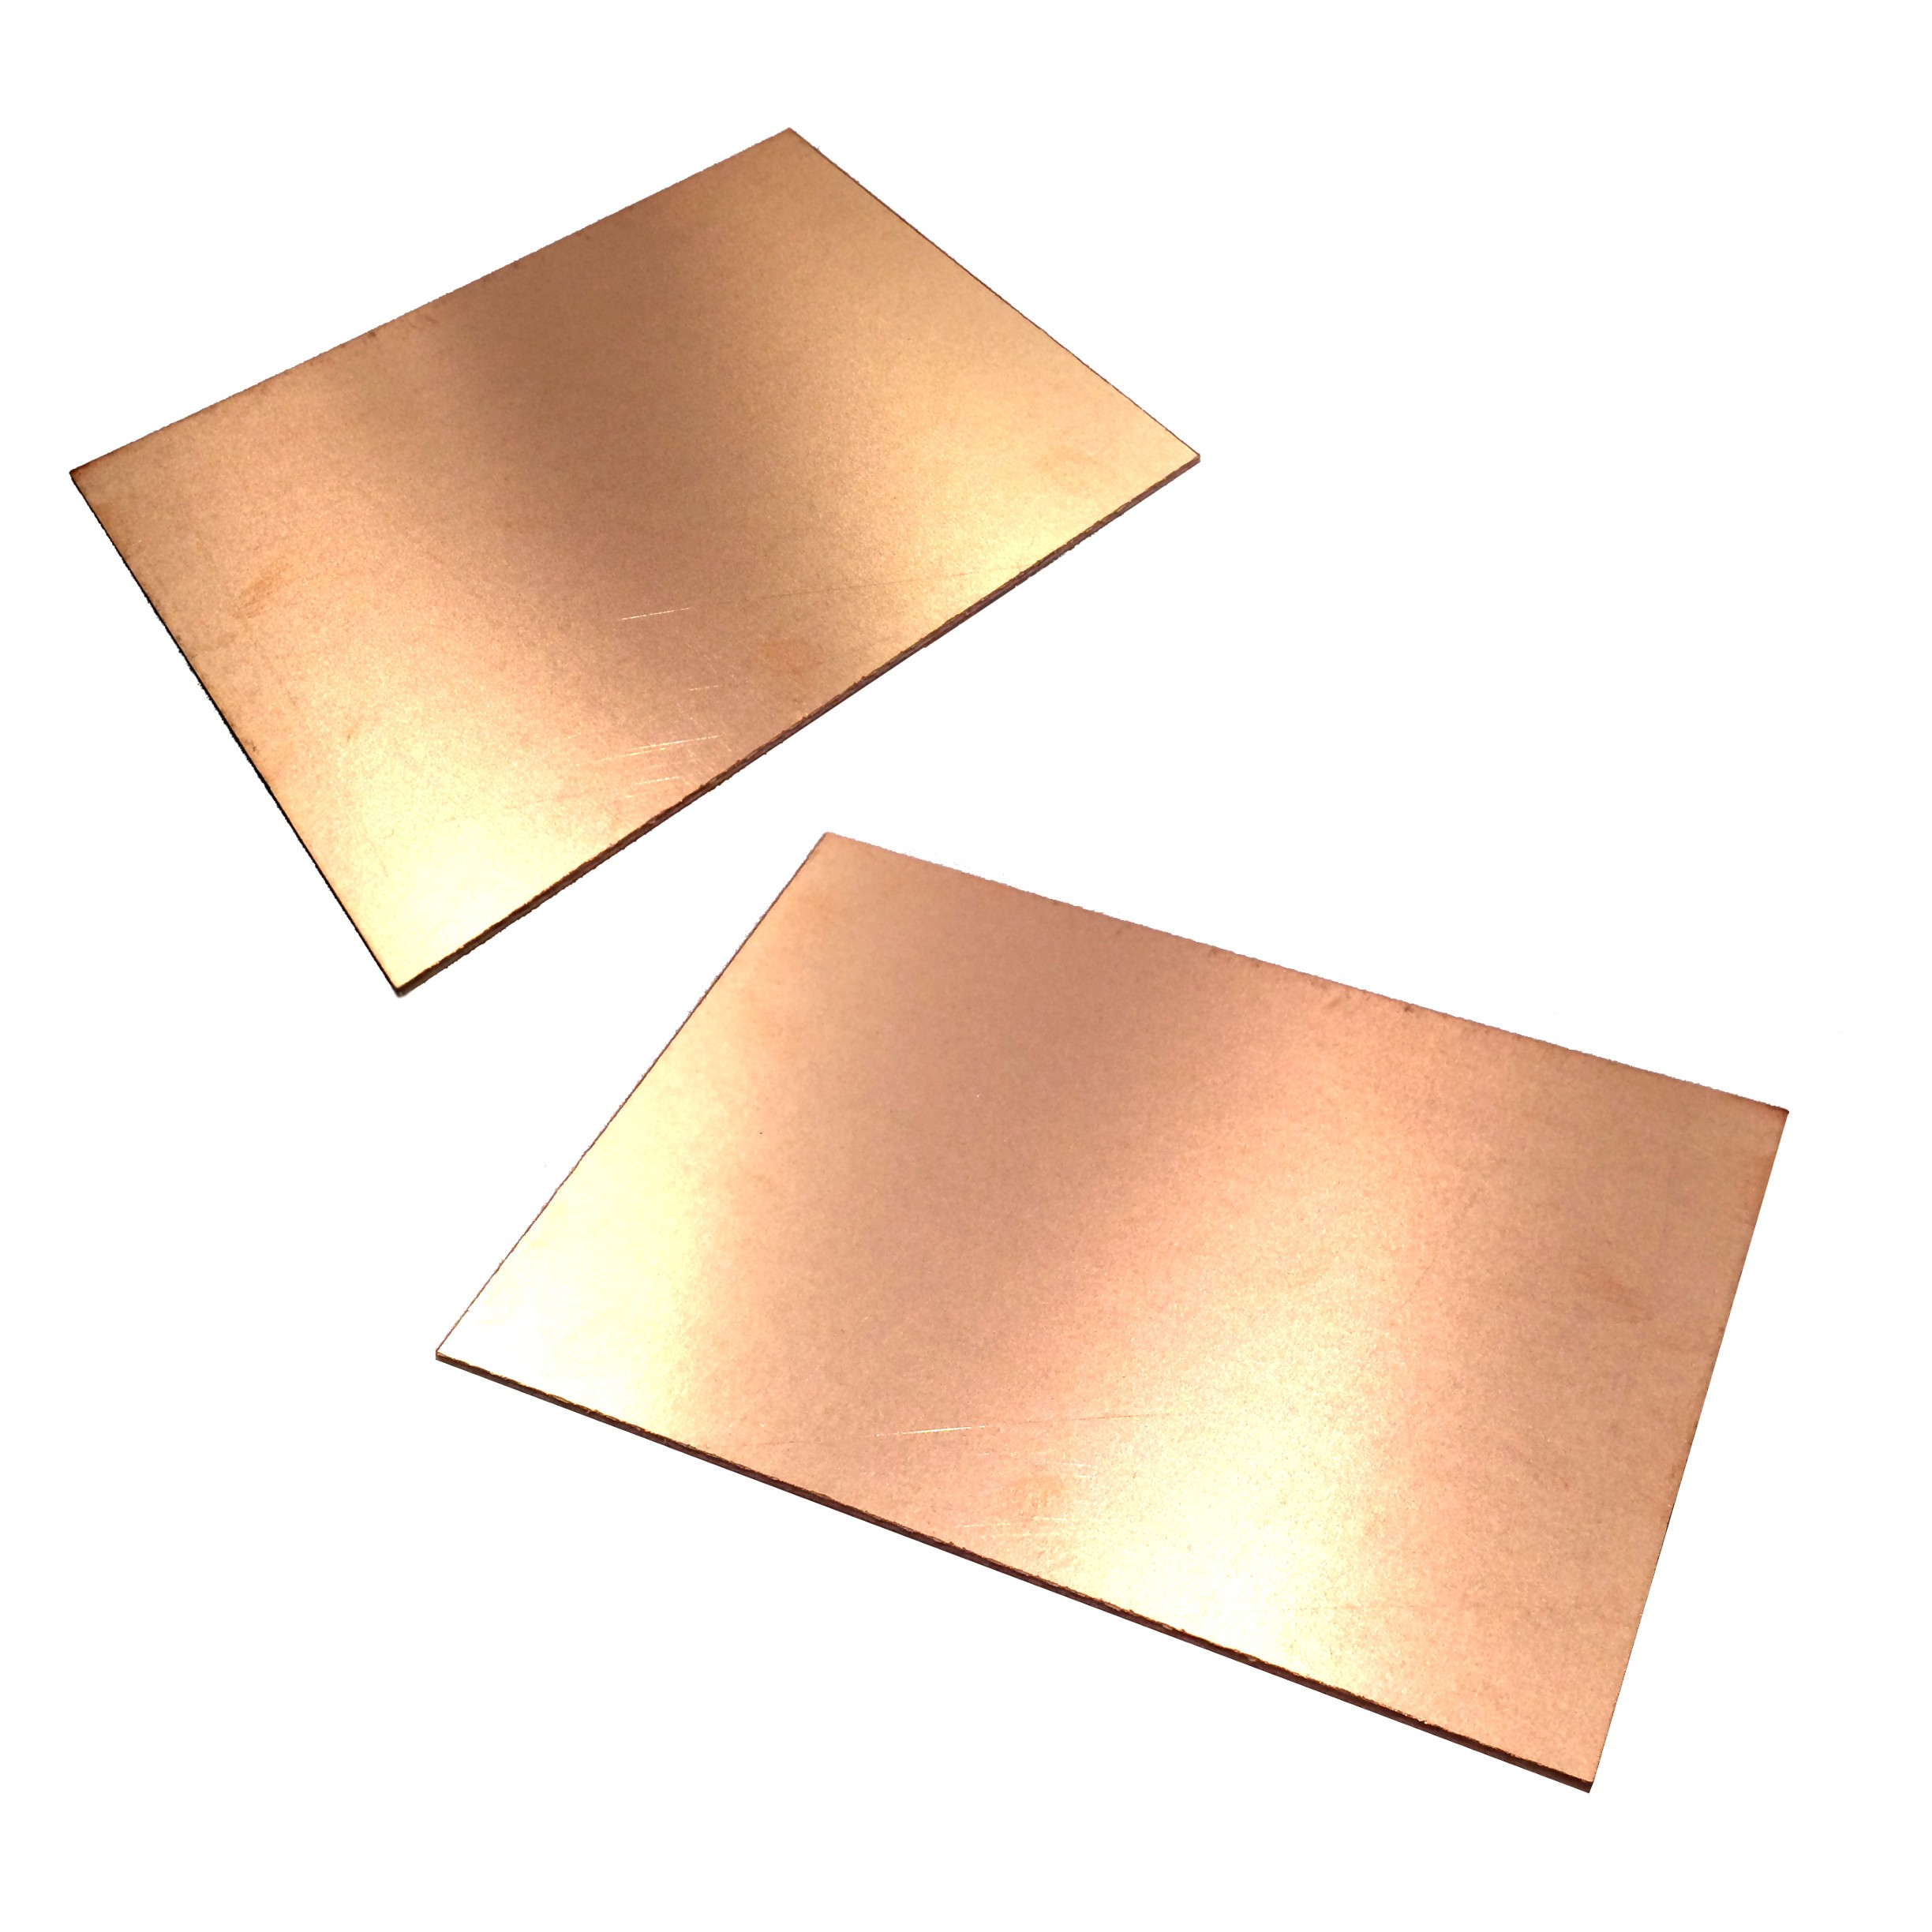 599 Double Sided Copper Clad Board Tinkersphere Doublesided Pcb Printed Circuit Boards